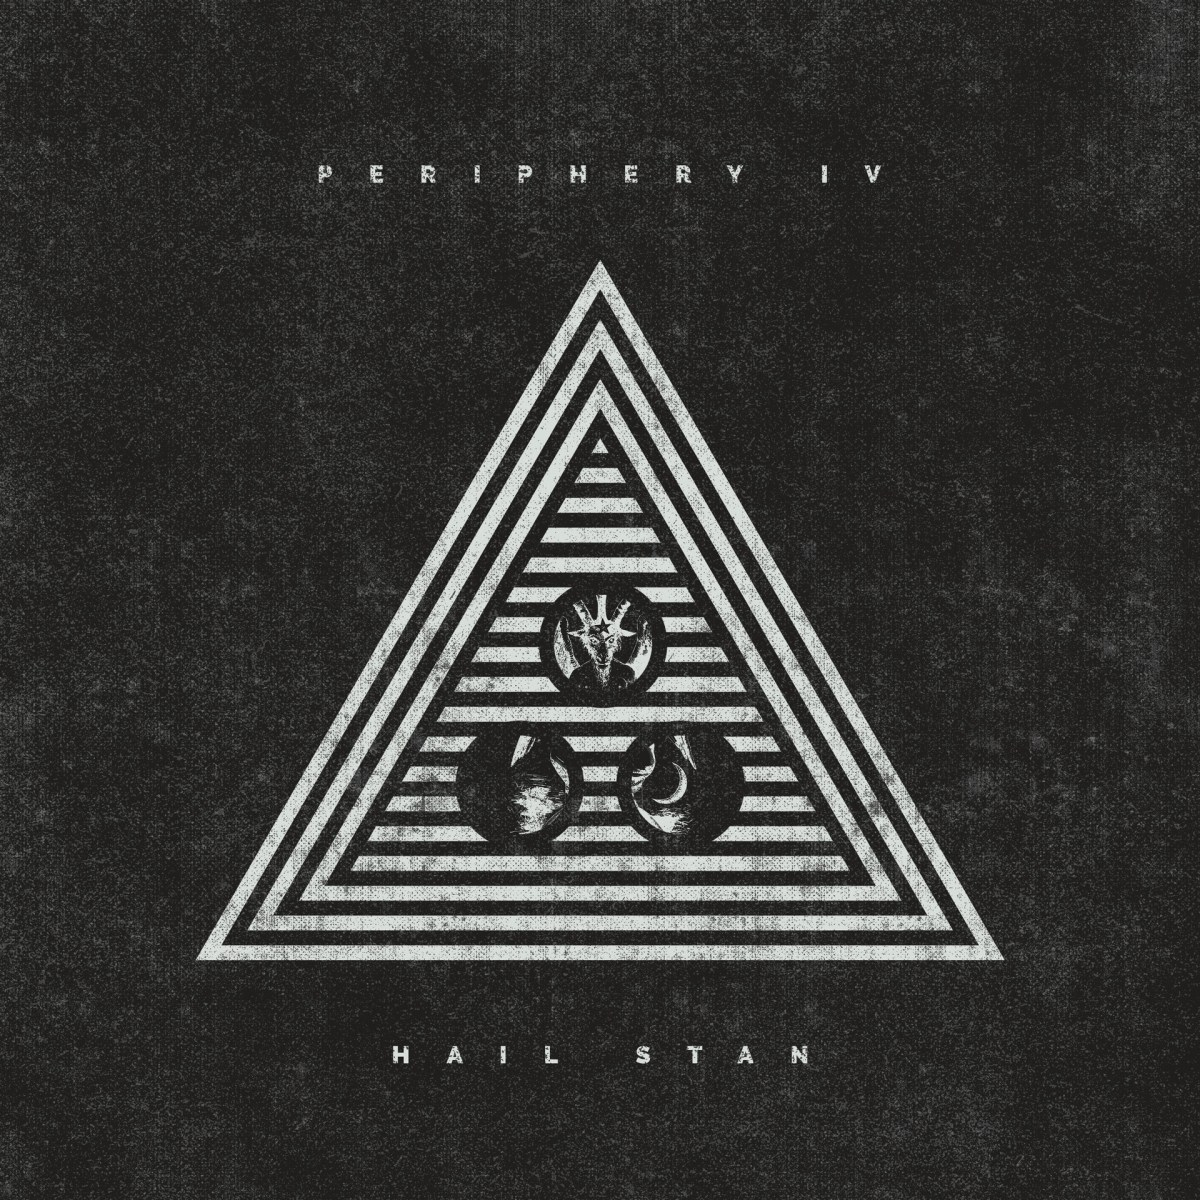 PERIPHERY RELEASE PERIPHERY IV: HAIL STAN ON APRIL 5;  PRE-ORDERS AVAILABLE!